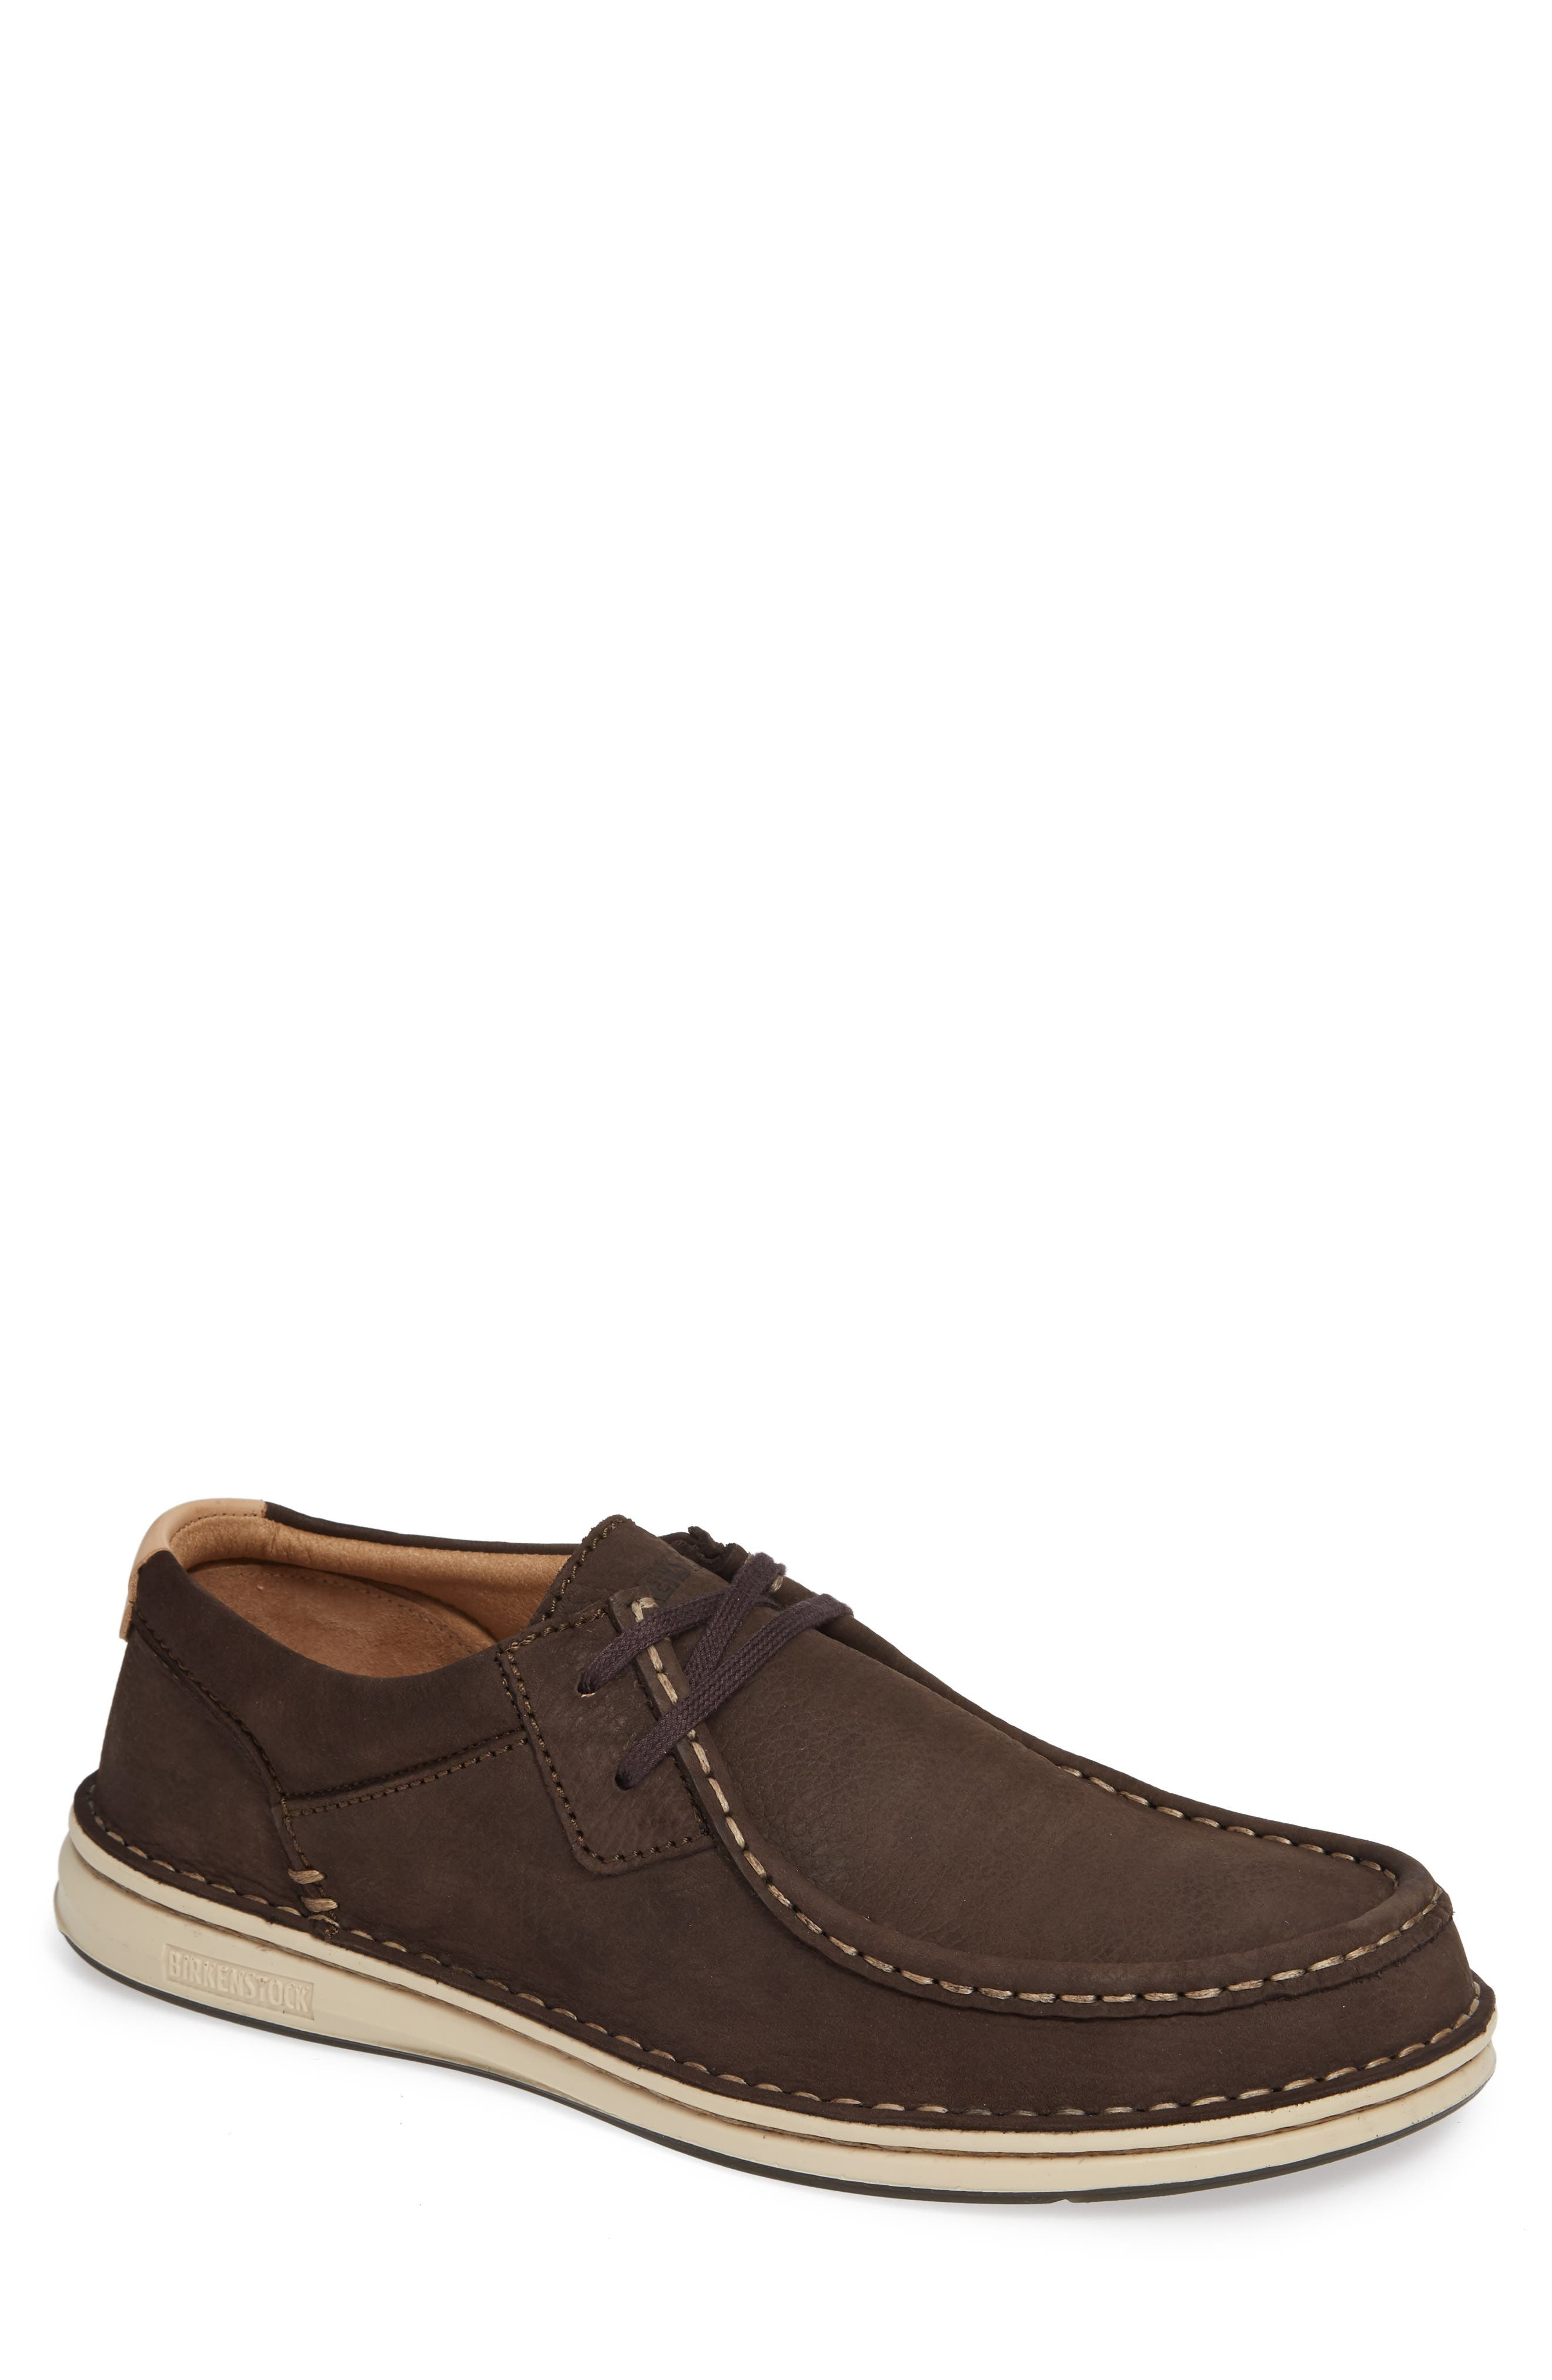 'Pasadena' Lace-Up Moccasin,                             Main thumbnail 1, color,                             BROWN